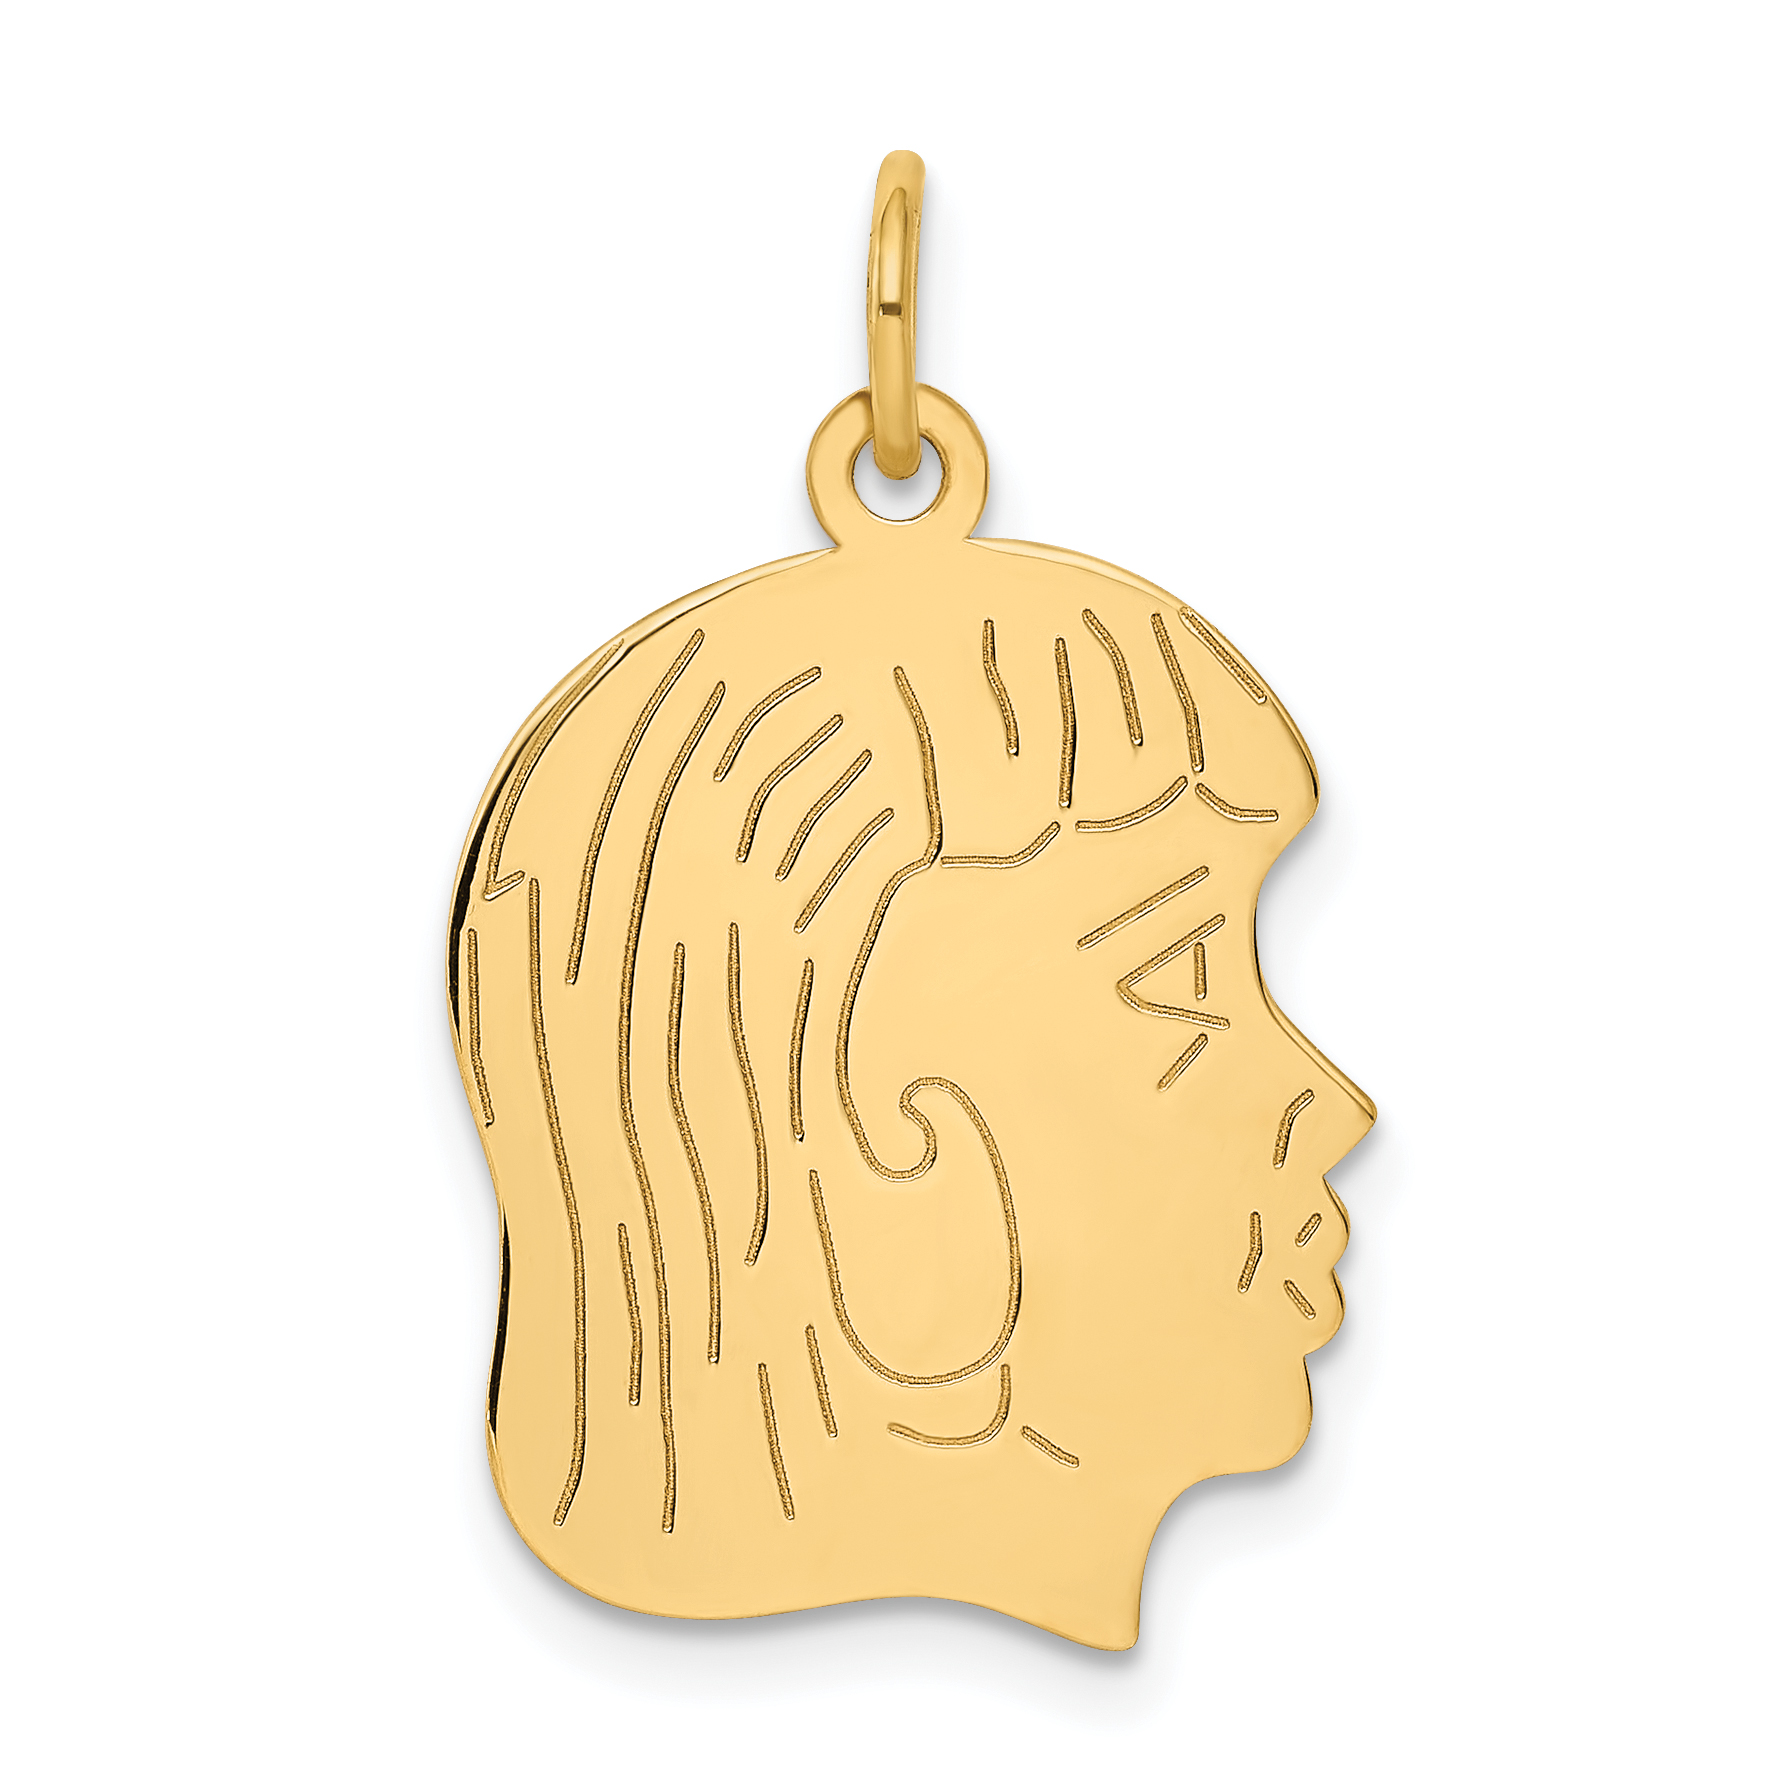 14k Yellow Gold Girl Head Pendant Charm Necklace Engravable Disc Right Facing Boy Pre Engraved Fine Jewelry Gifts For Women For Her - image 2 de 2